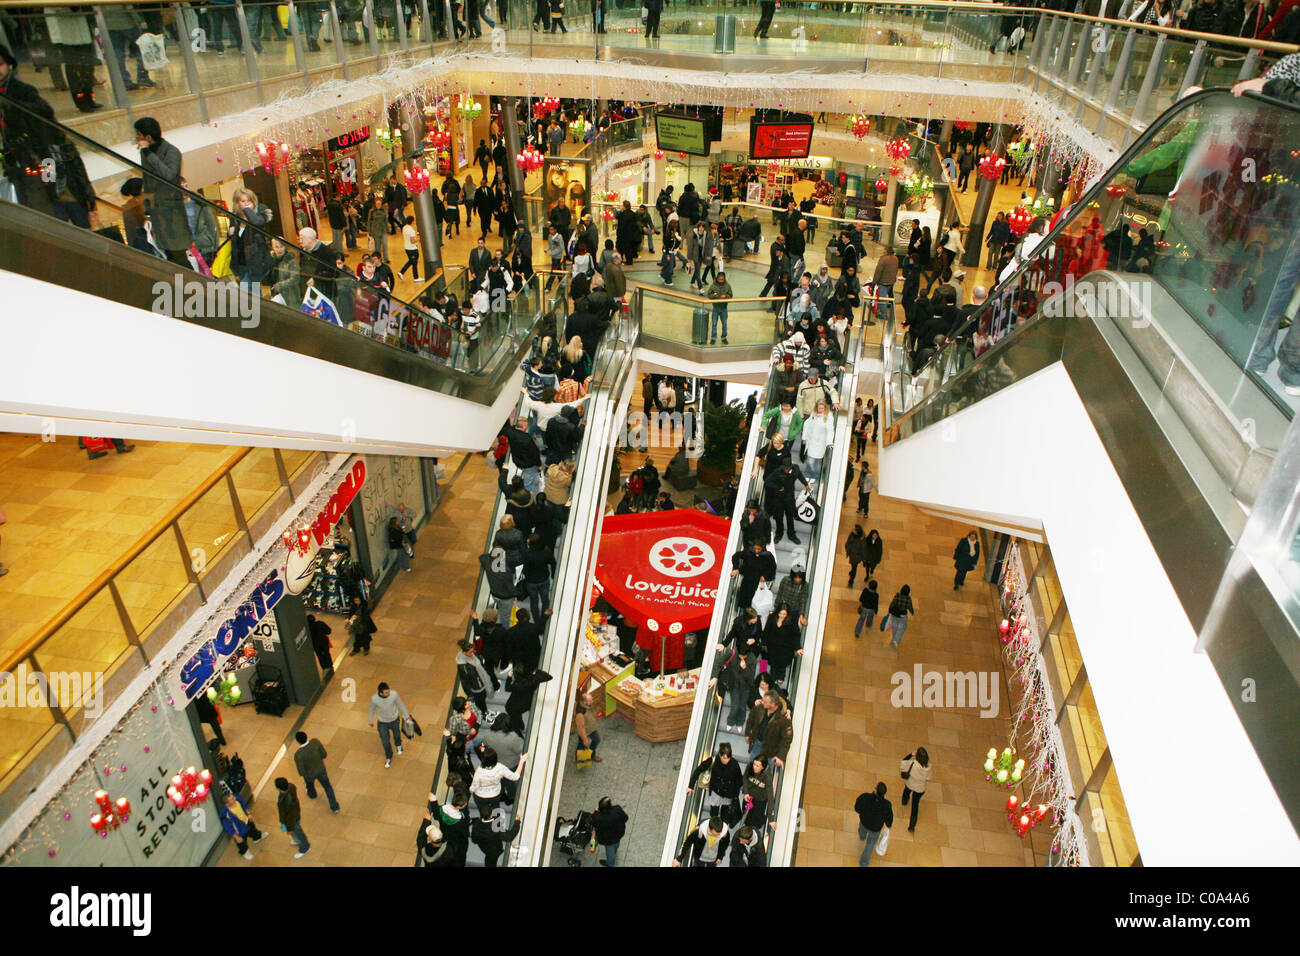 Shopping Mall packed with shoppers at the Westfield shopping centre - Stock Image